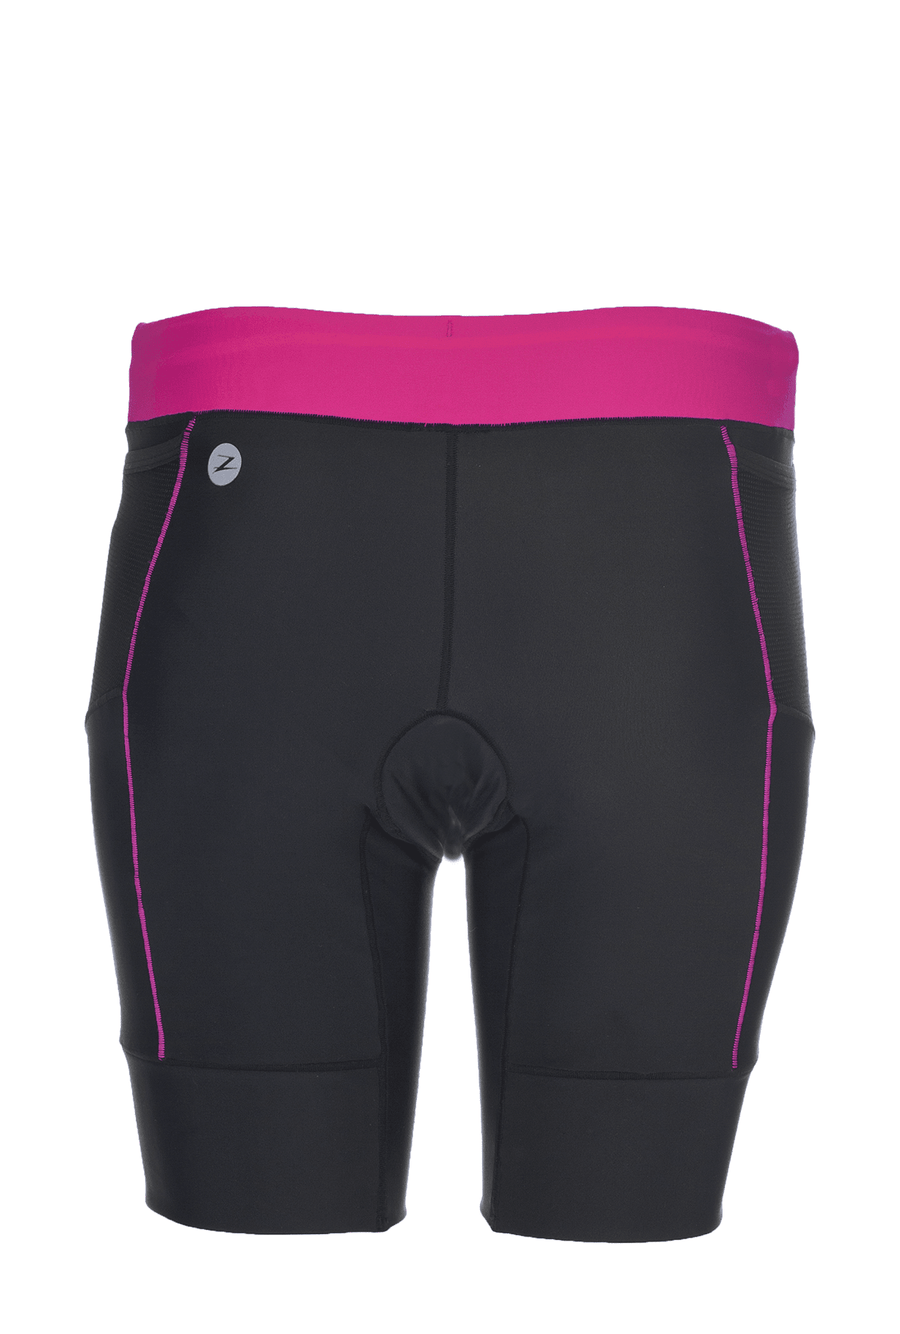 Zoot Sports TRI APPAREL WOMENS ACTIVE TRI 8